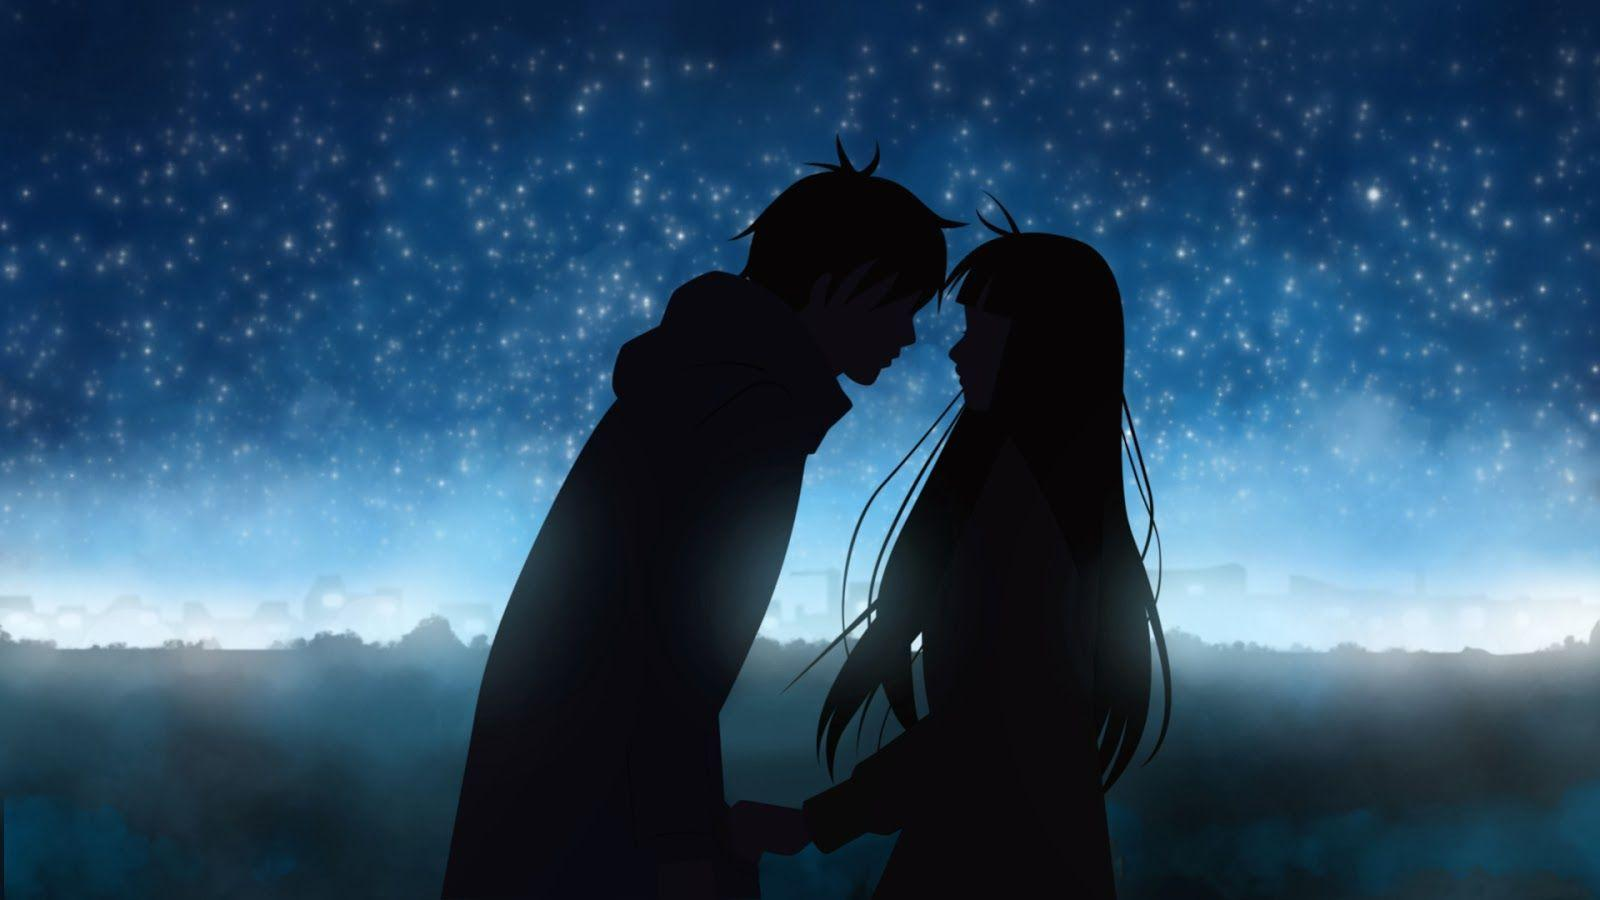 Wallpaper Love Story Hd : Anime Love Wallpapers - Wallpaper cave